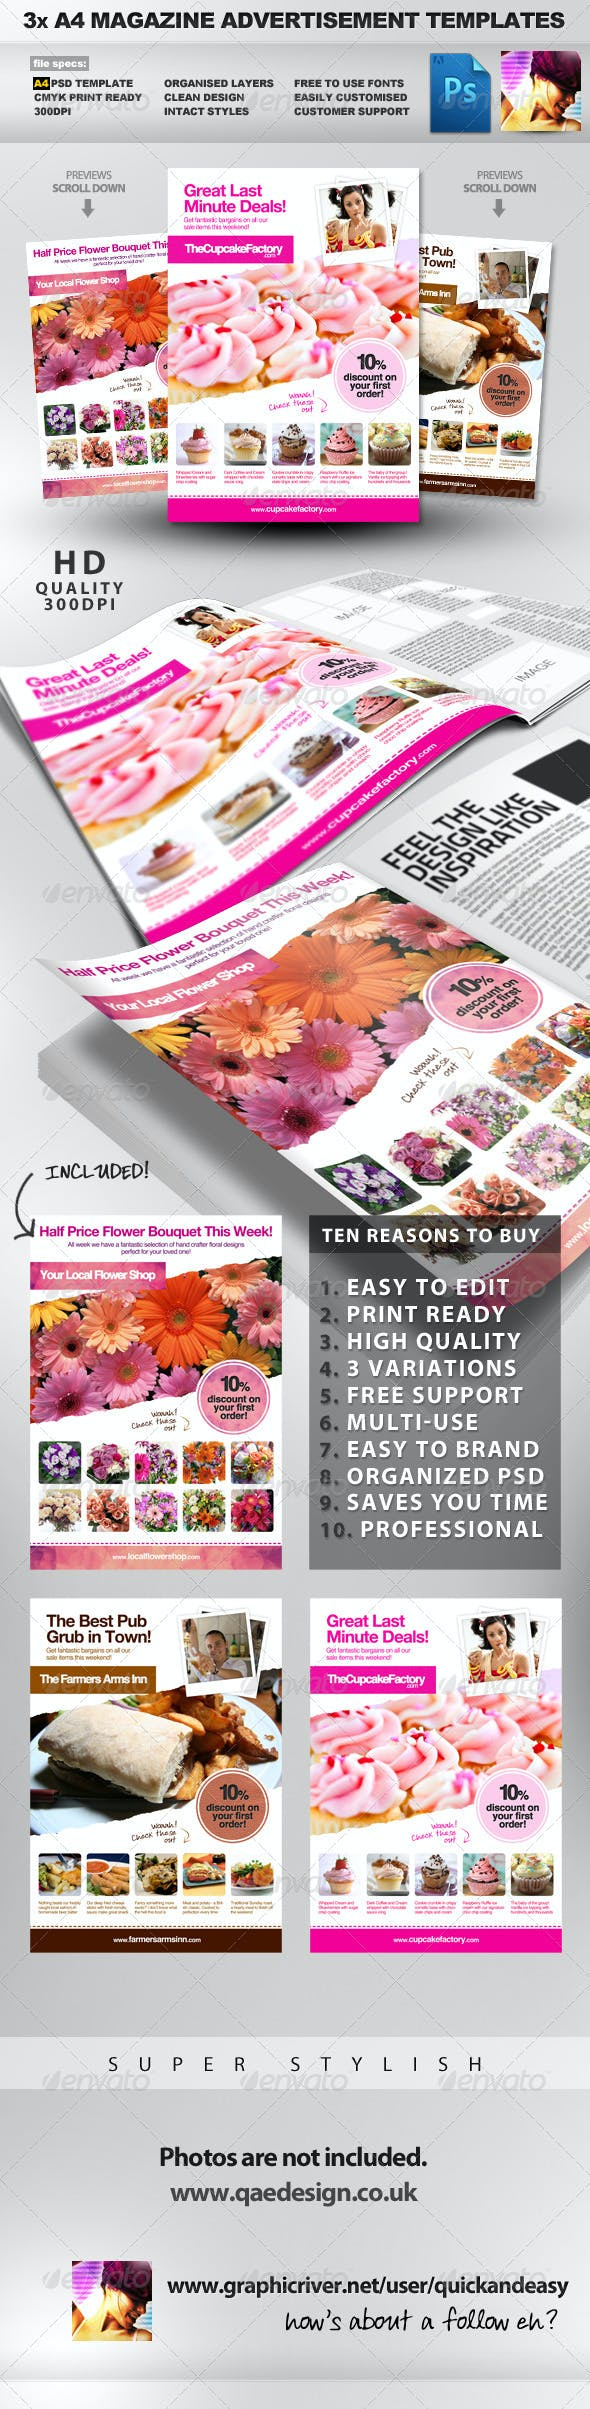 3x a4 psd magazine advert templates by quickandeasy graphicriver